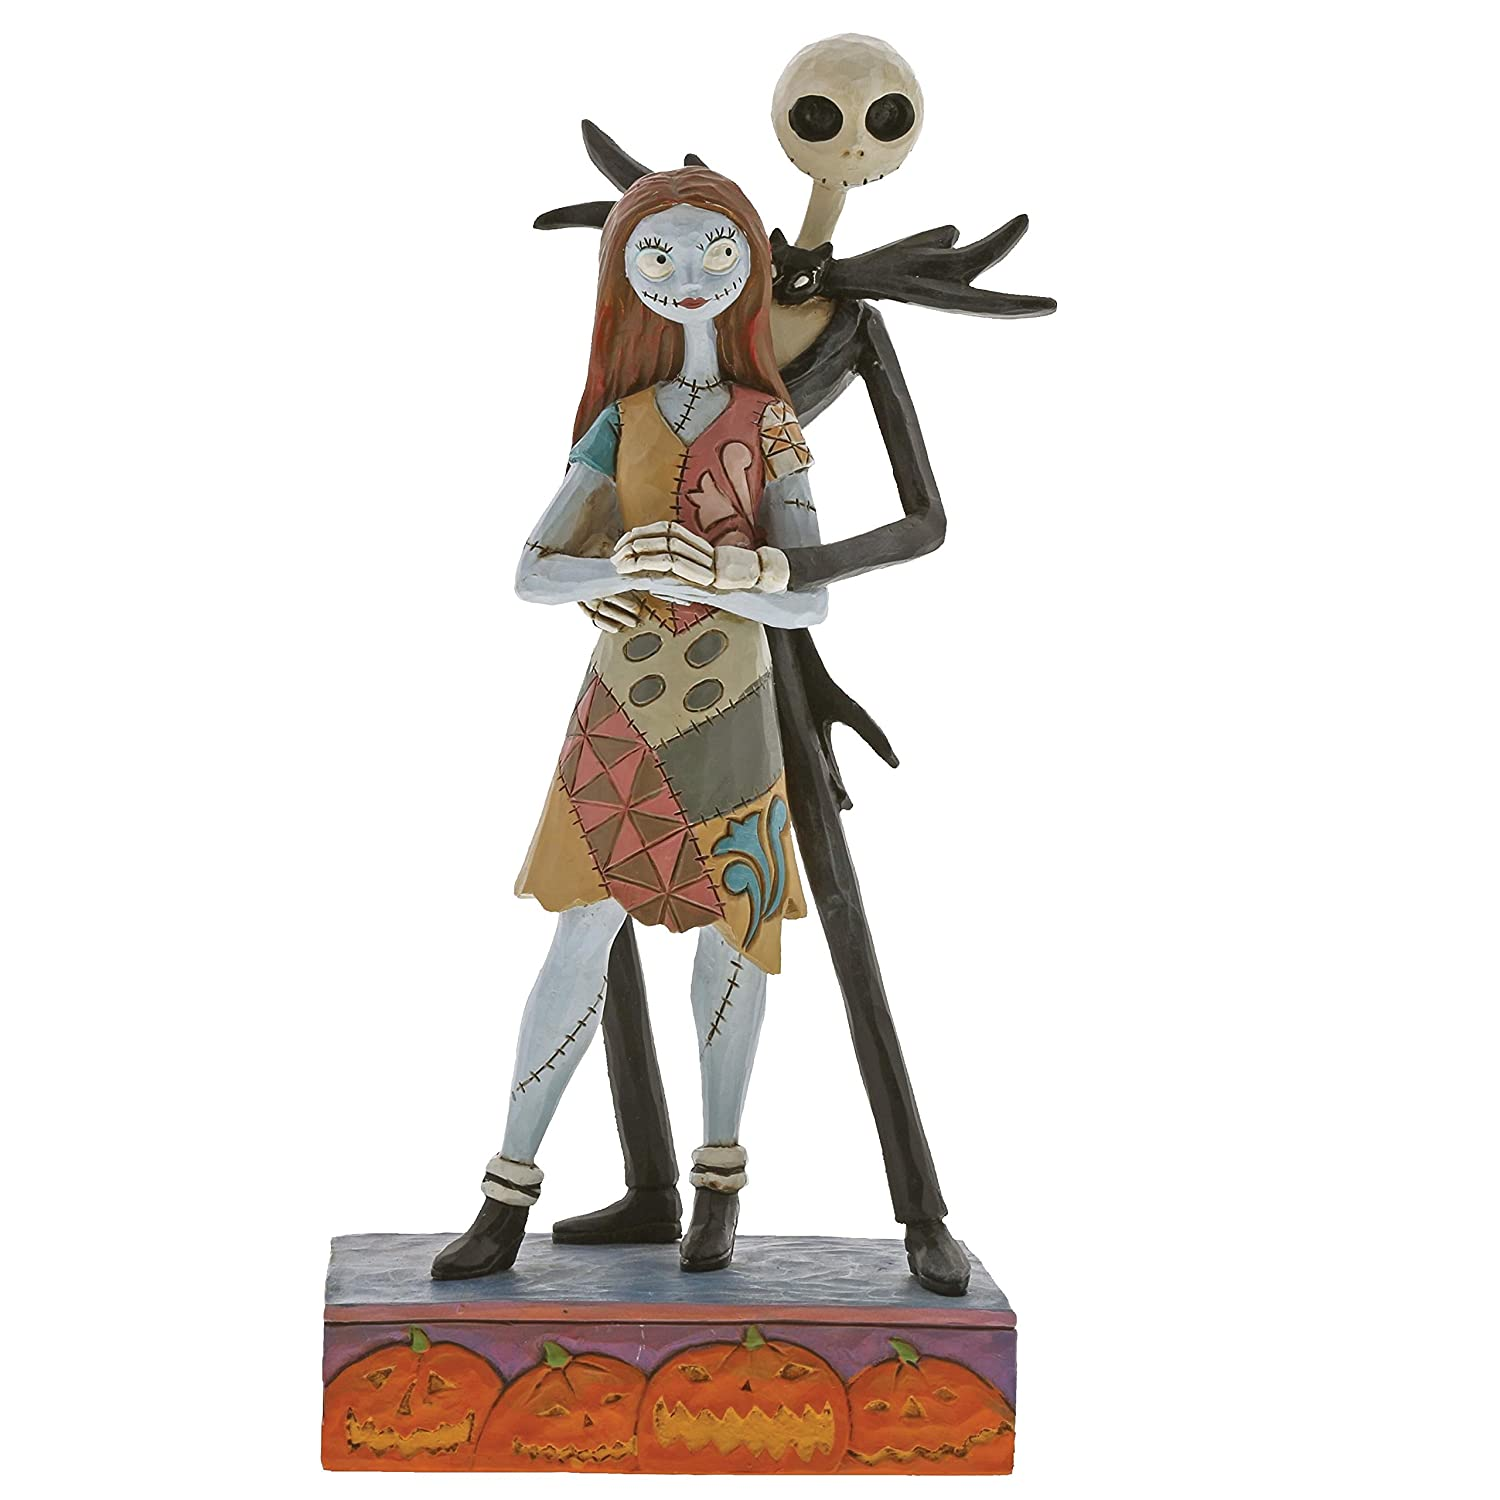 Disney Traditions Fated Romance-Jack & Sally Figurine Decorazione, Multicolour, Taglia Unica Nightmare Before Christmas 4057951 NON-CLASSIFIABLE